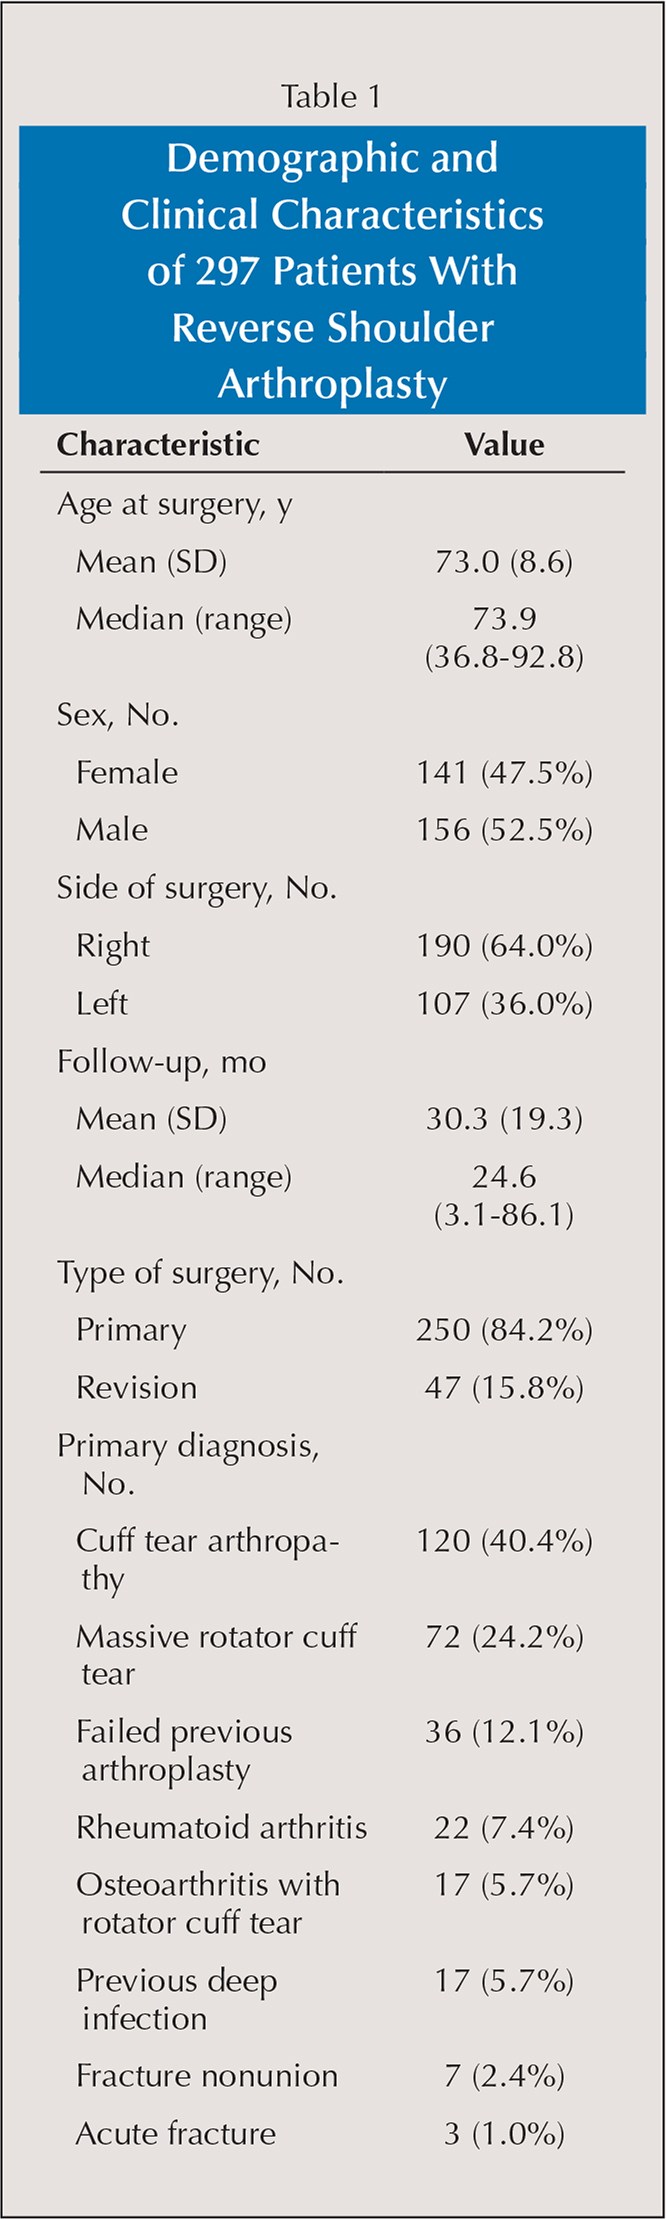 Demographic and Clinical Characteristics of 297 Patients With Reverse Shoulder Arthroplasty